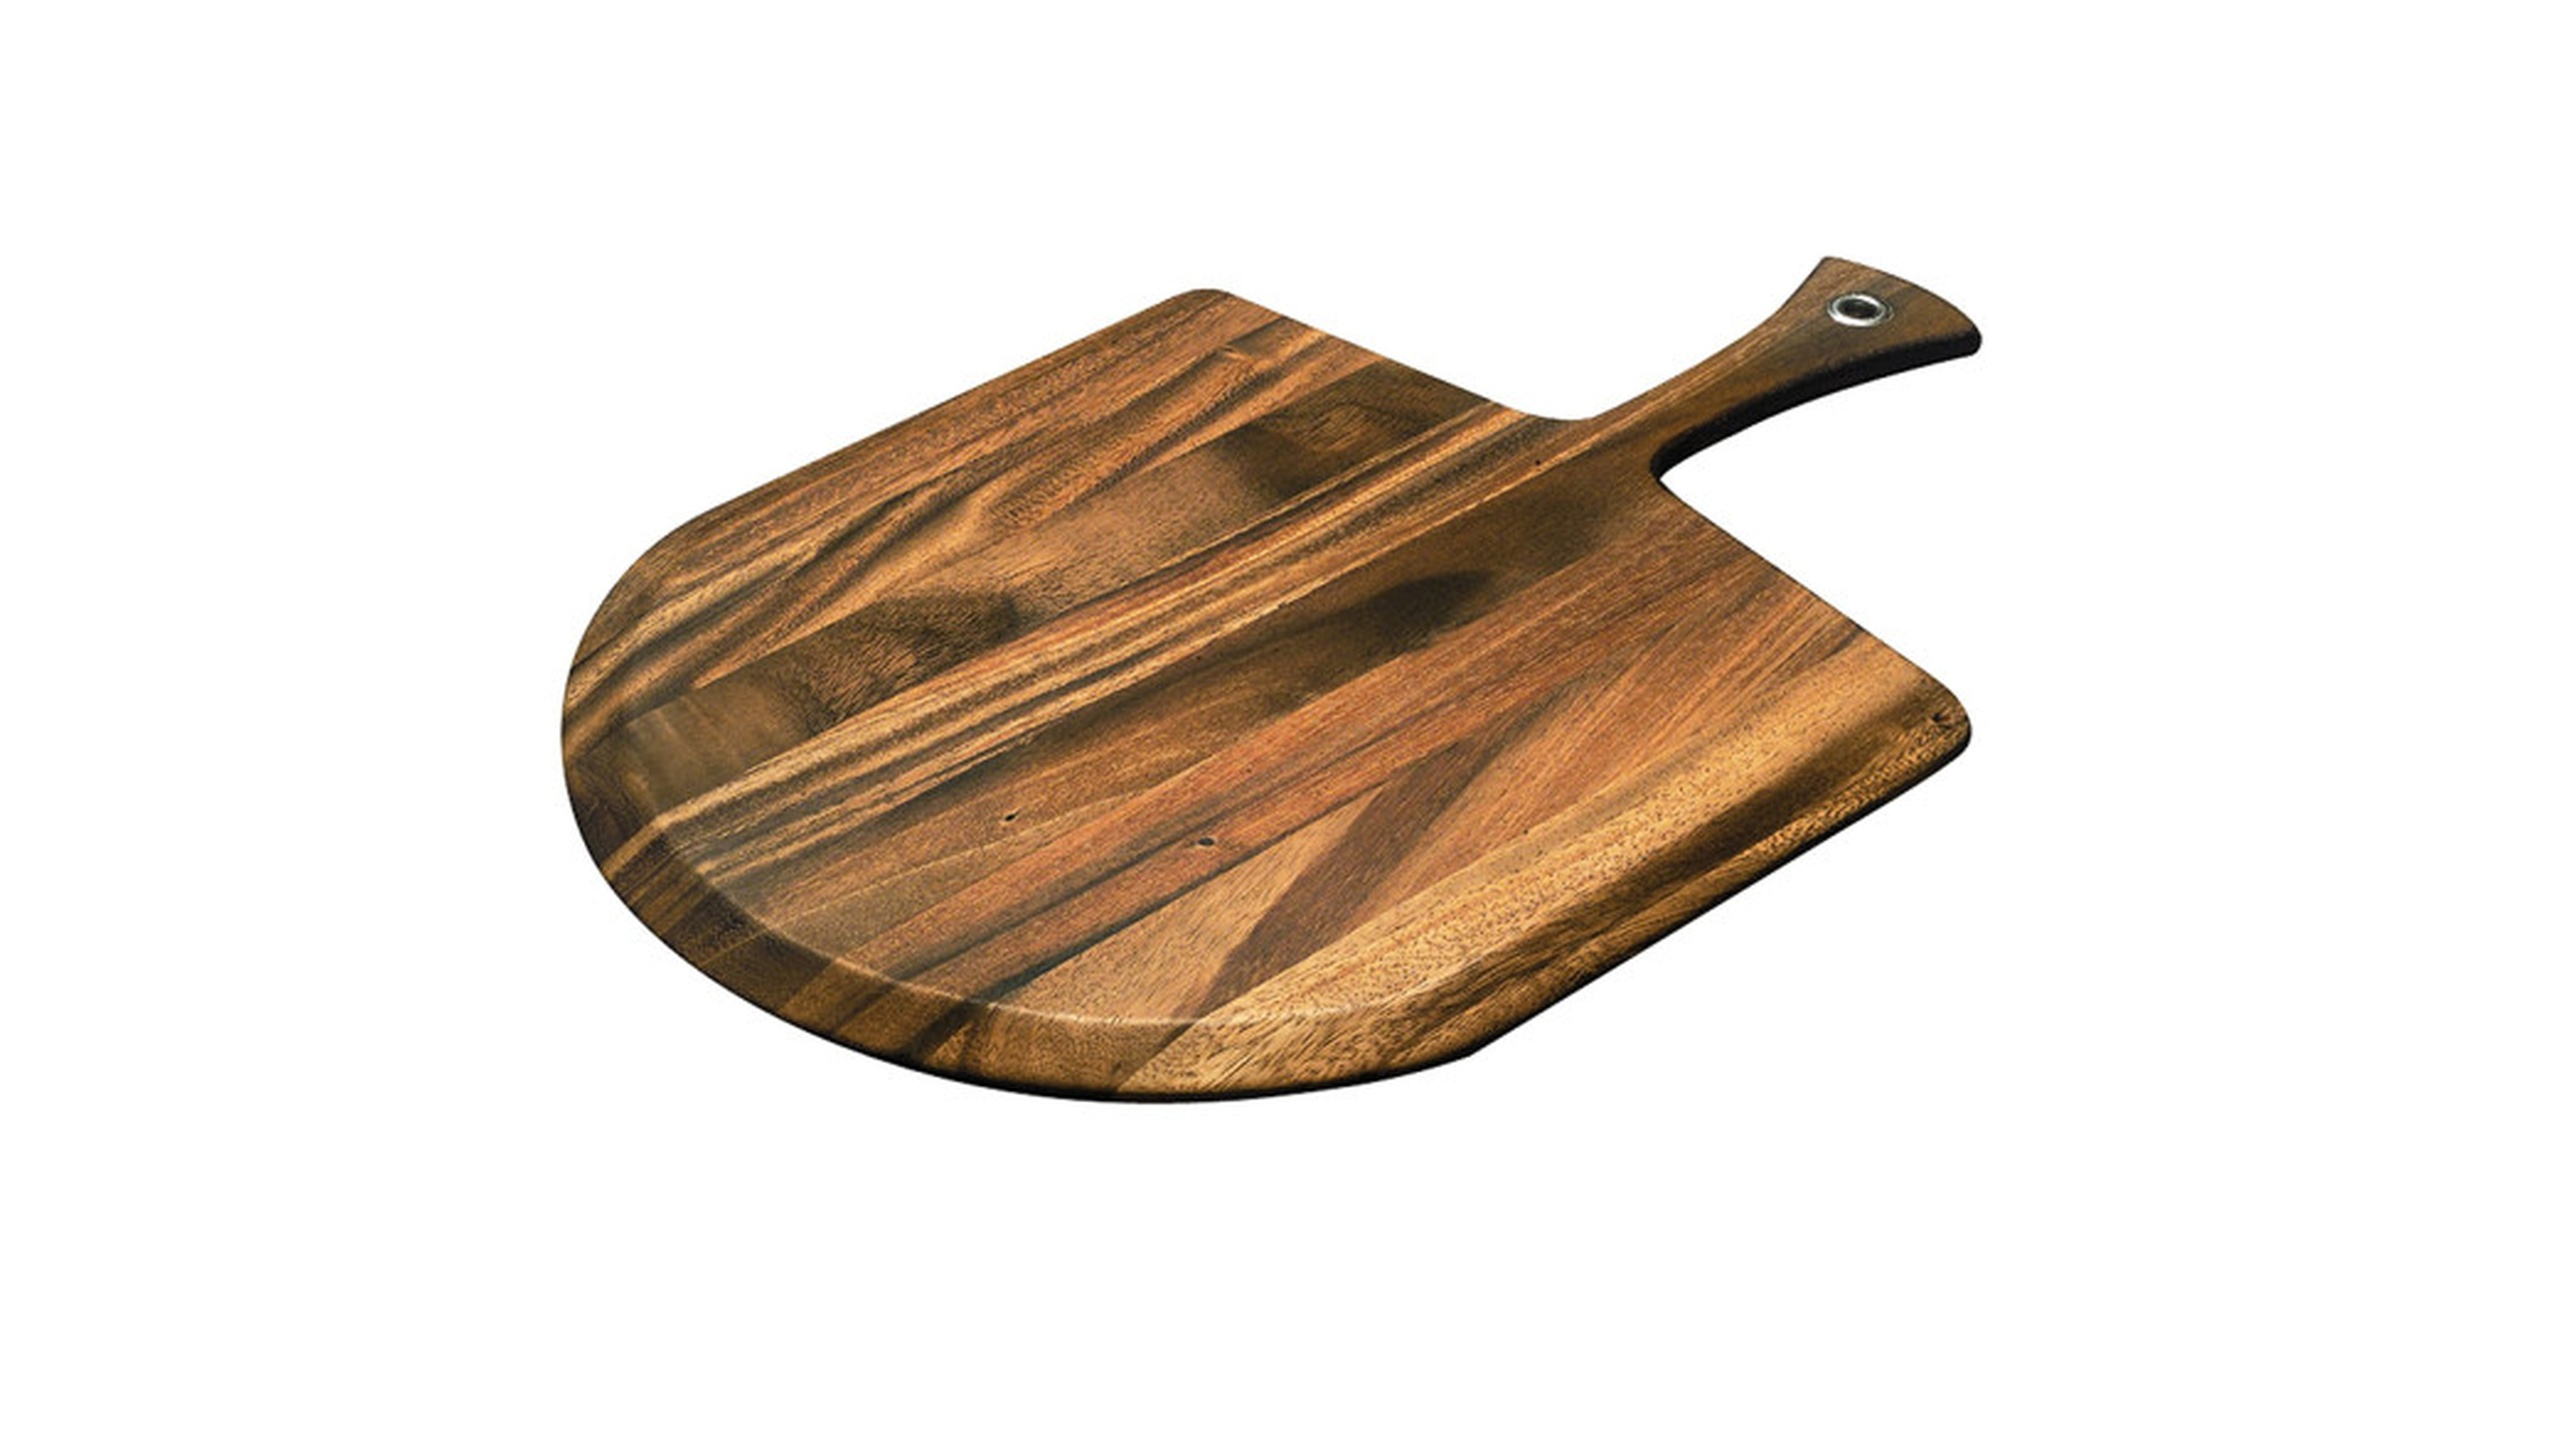 Cucina Pizza Groupon Ironwood Gourmet 28214 Napoli Pizza Peel Acacia Wood